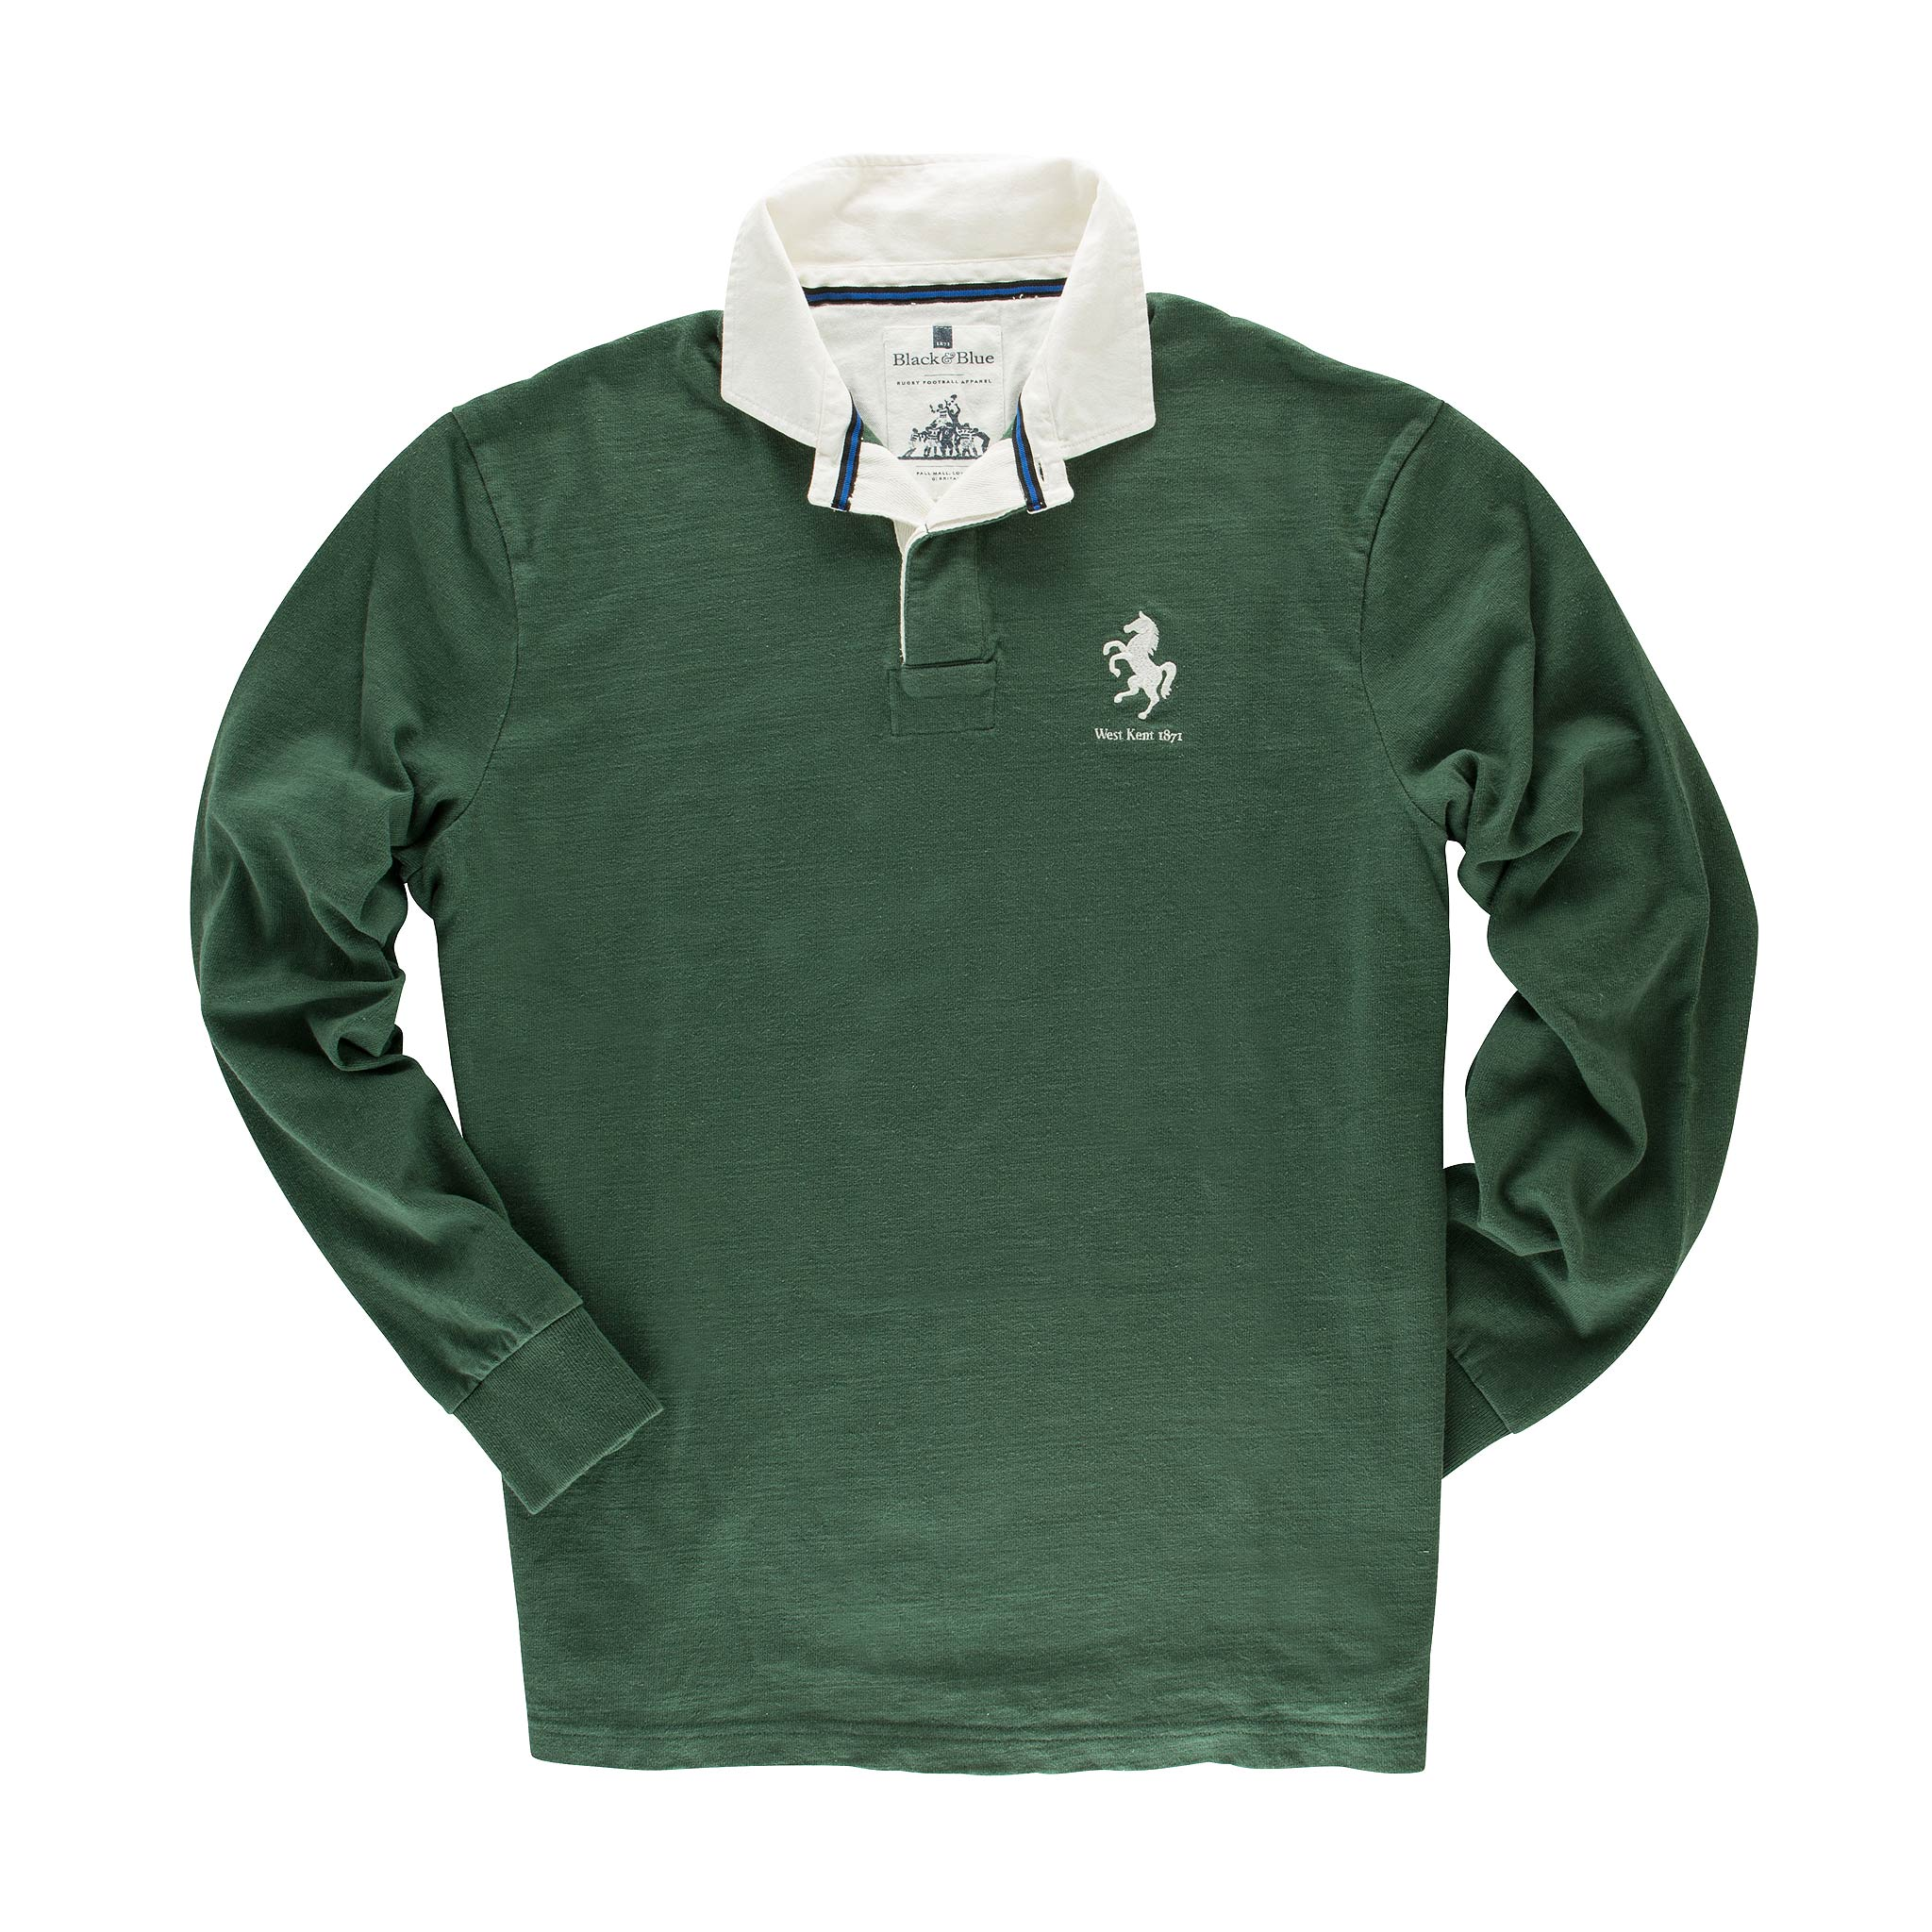 West Kent 1871 Rugby Shirt - front